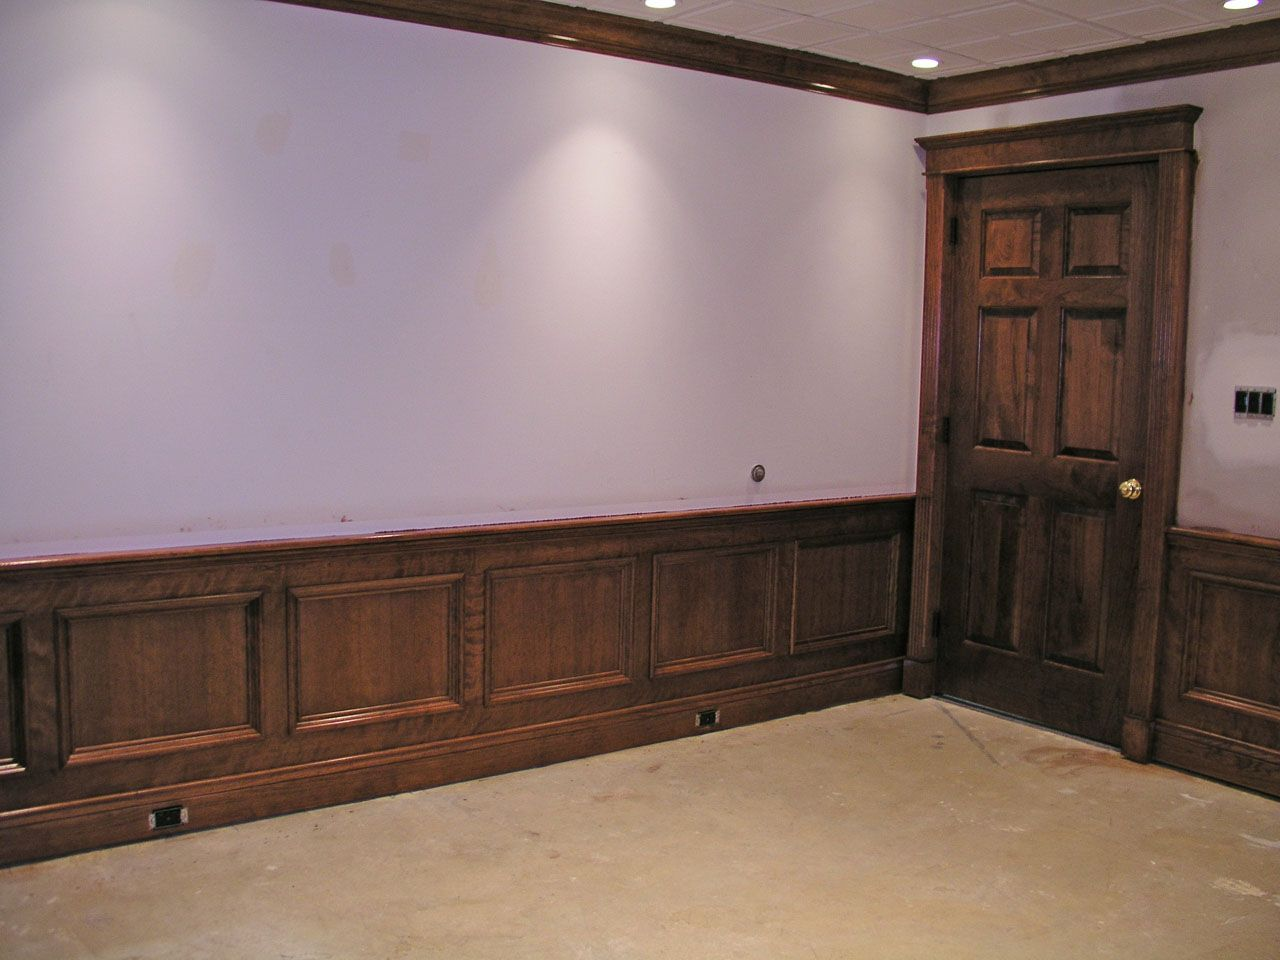 Walls With Stained Wood Wainscoting